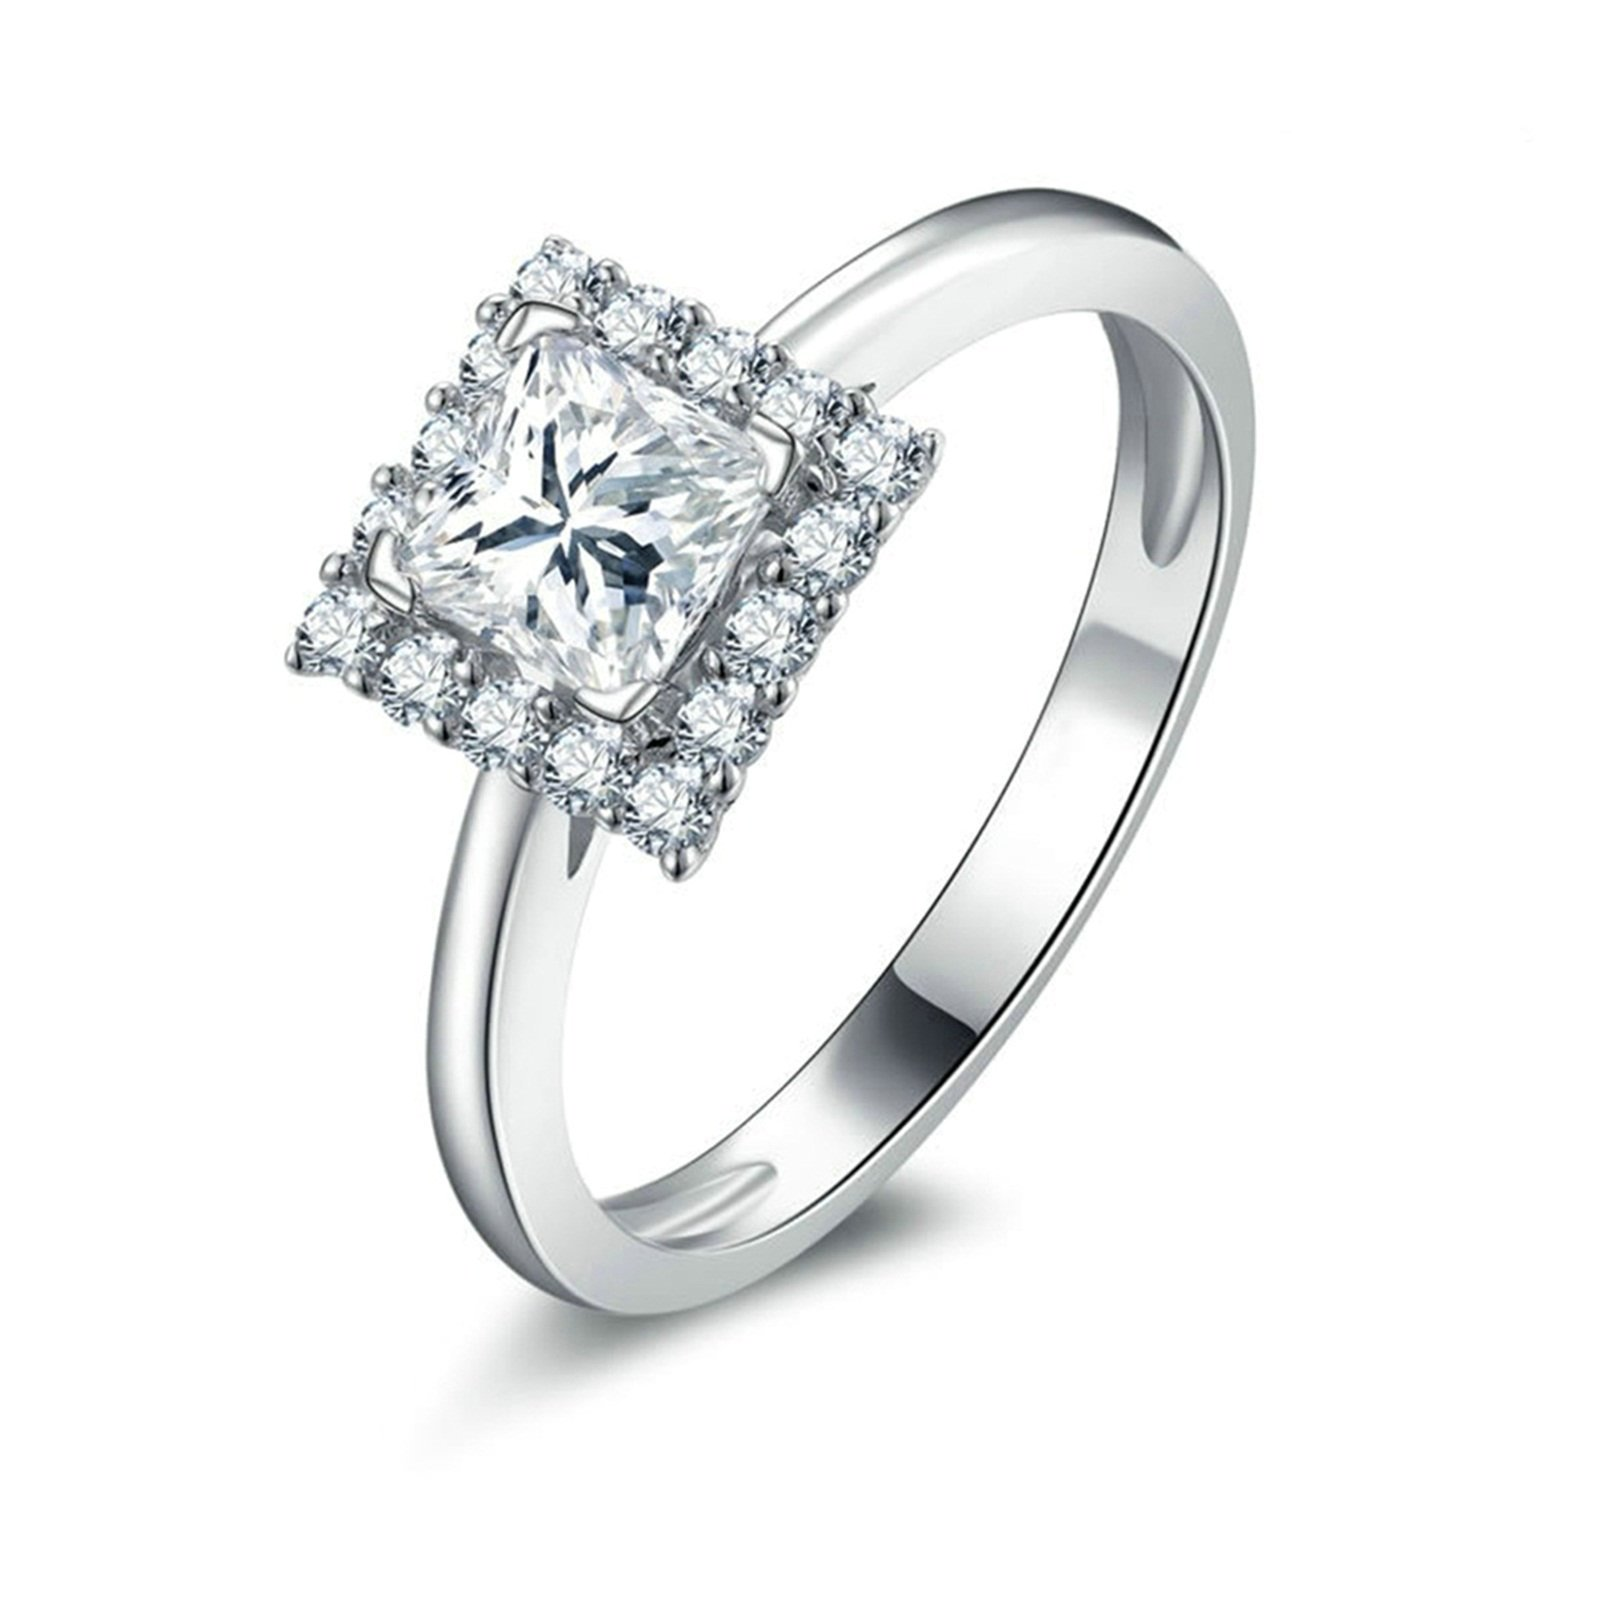 Daesar Engagement Rings Zirconia 4-Prong Setting Princess & Round Cut Crystal Ring Size 9